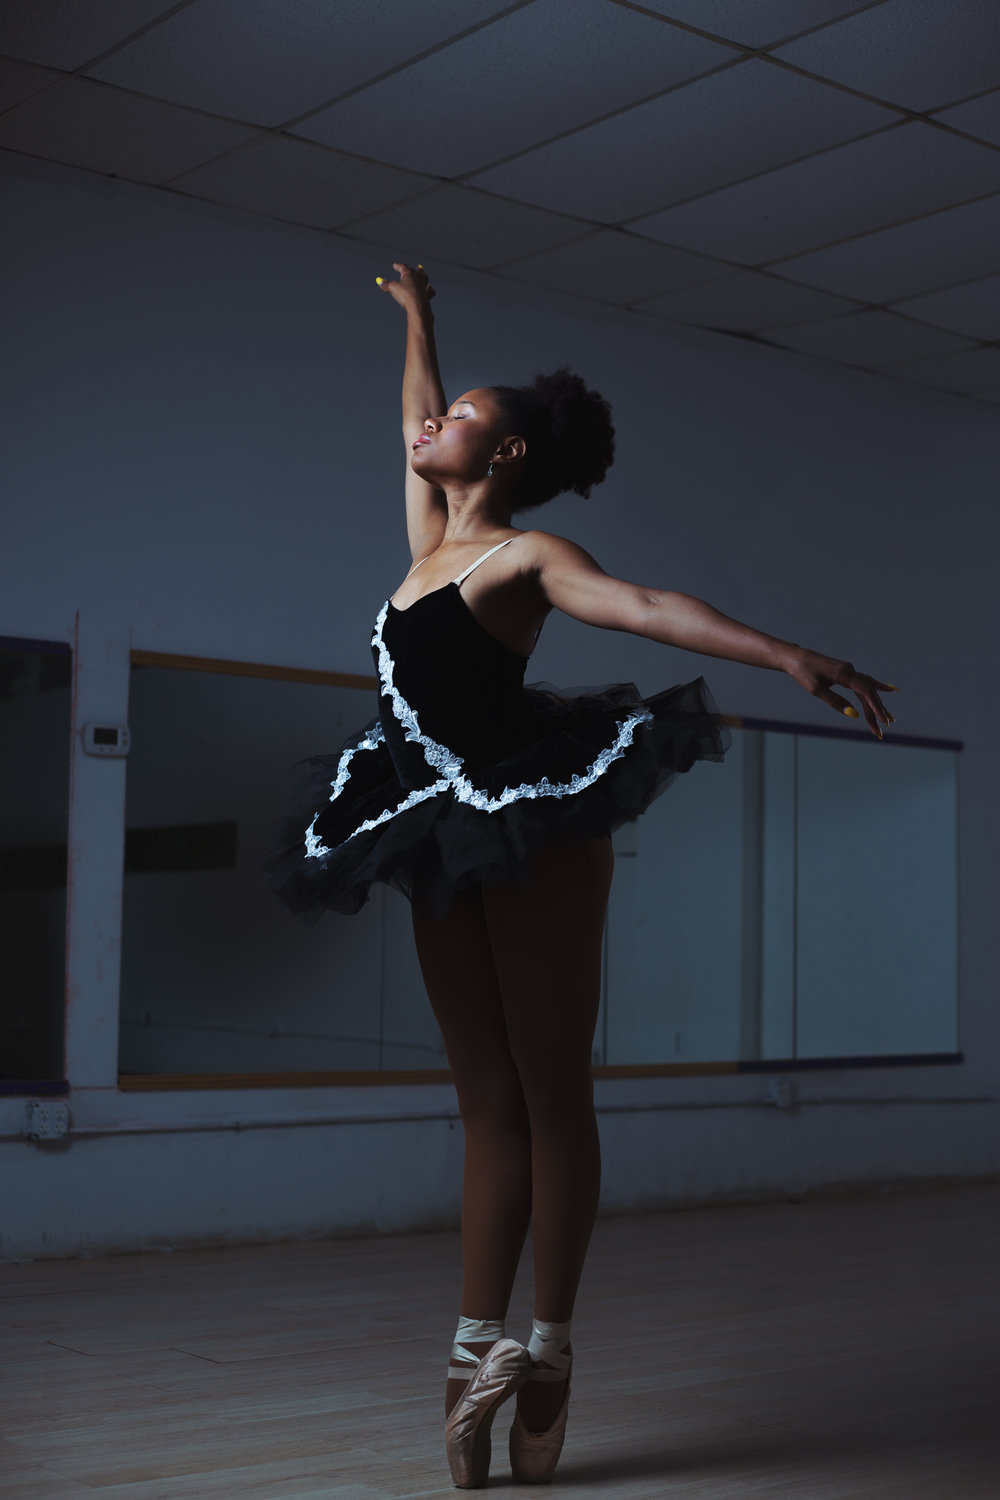 ballet chamber photography